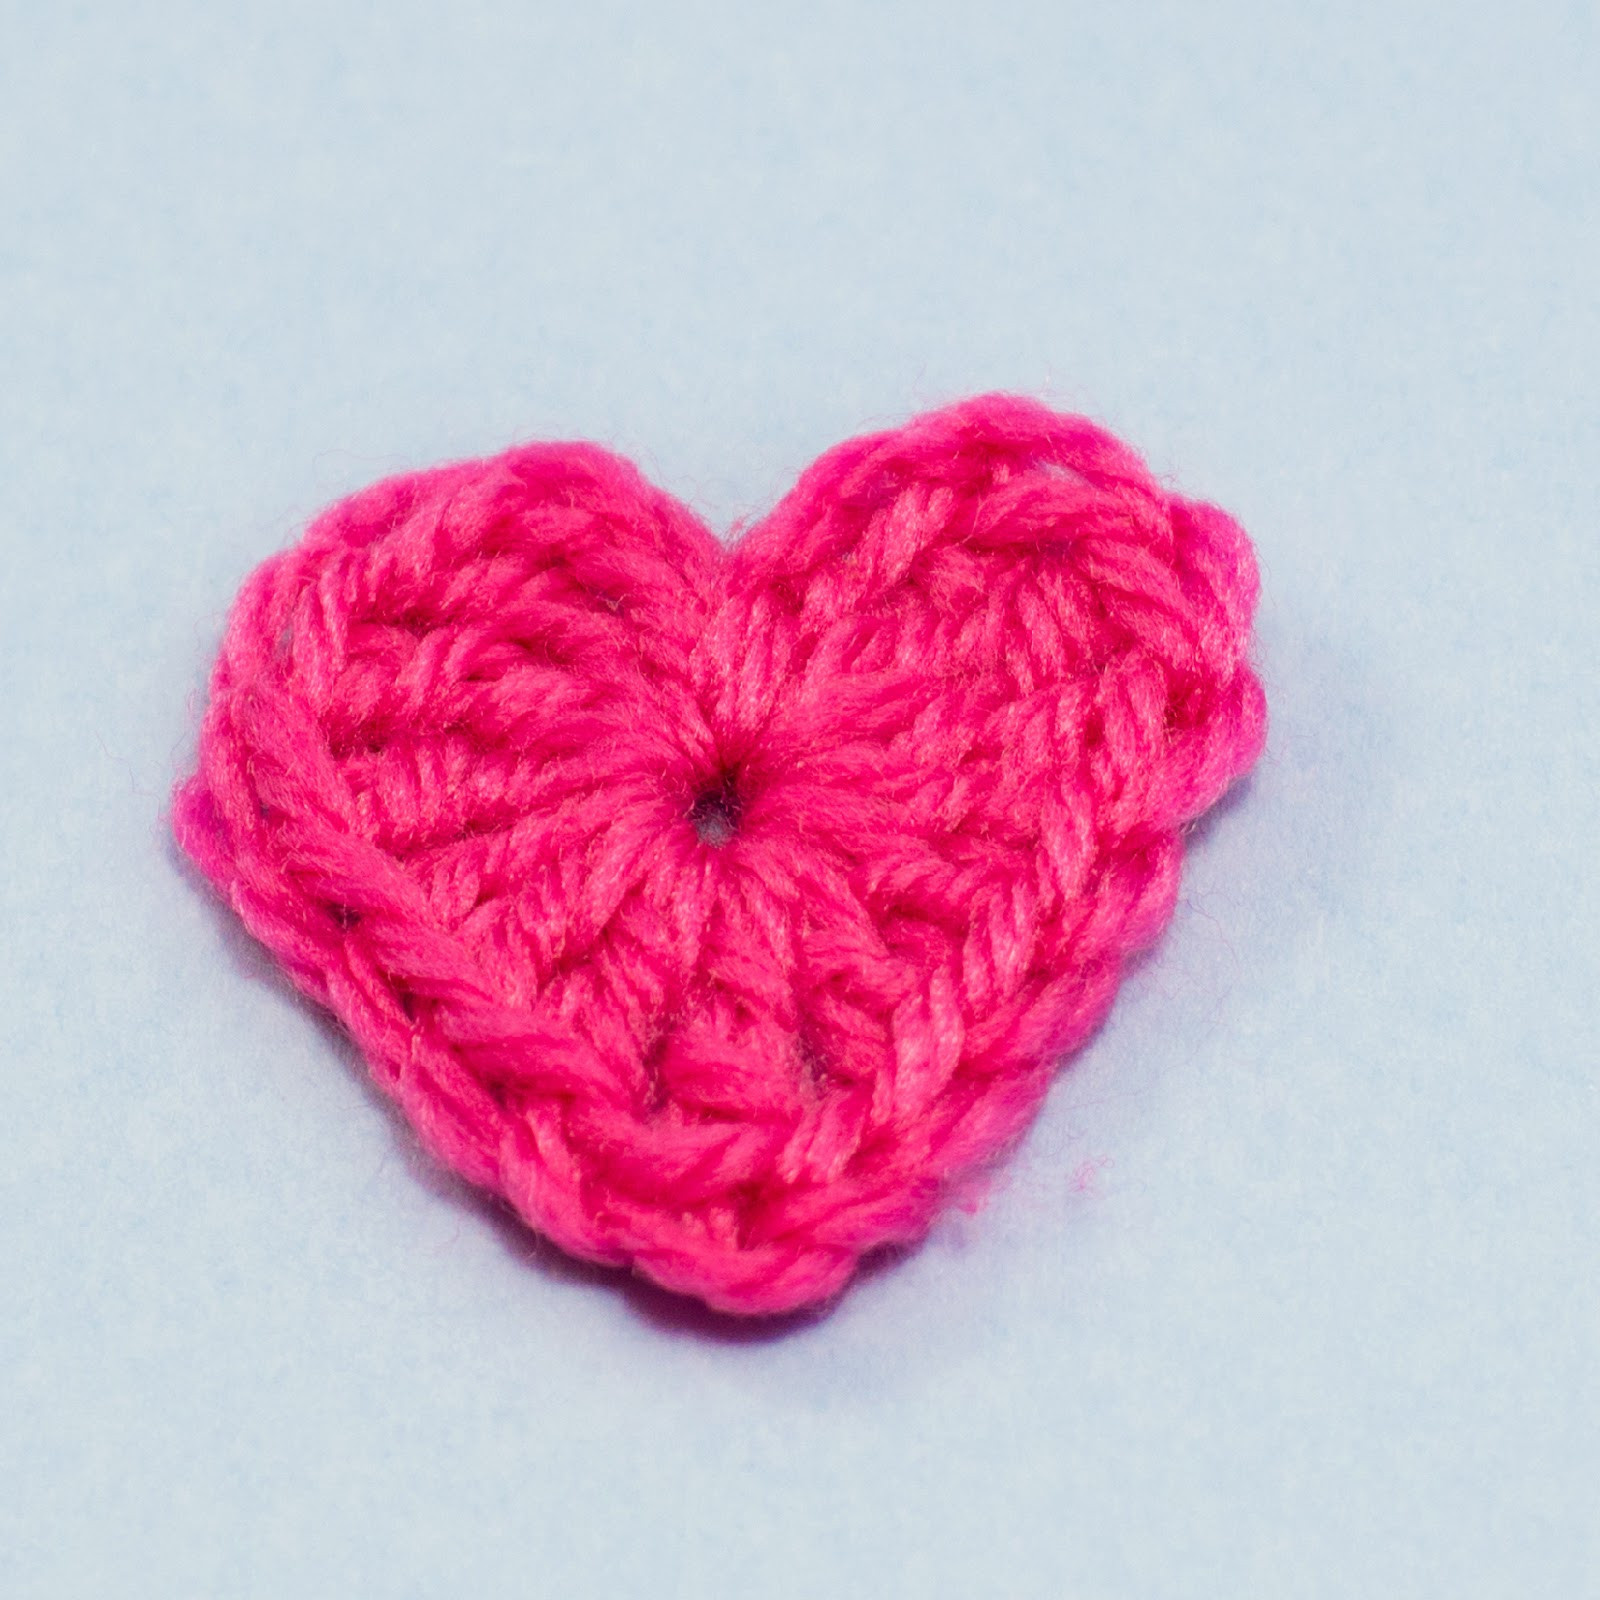 Red Heart Free Crochet Patterns Awesome Free Heart Crochet Pattern Of Adorable 43 Images Red Heart Free Crochet Patterns